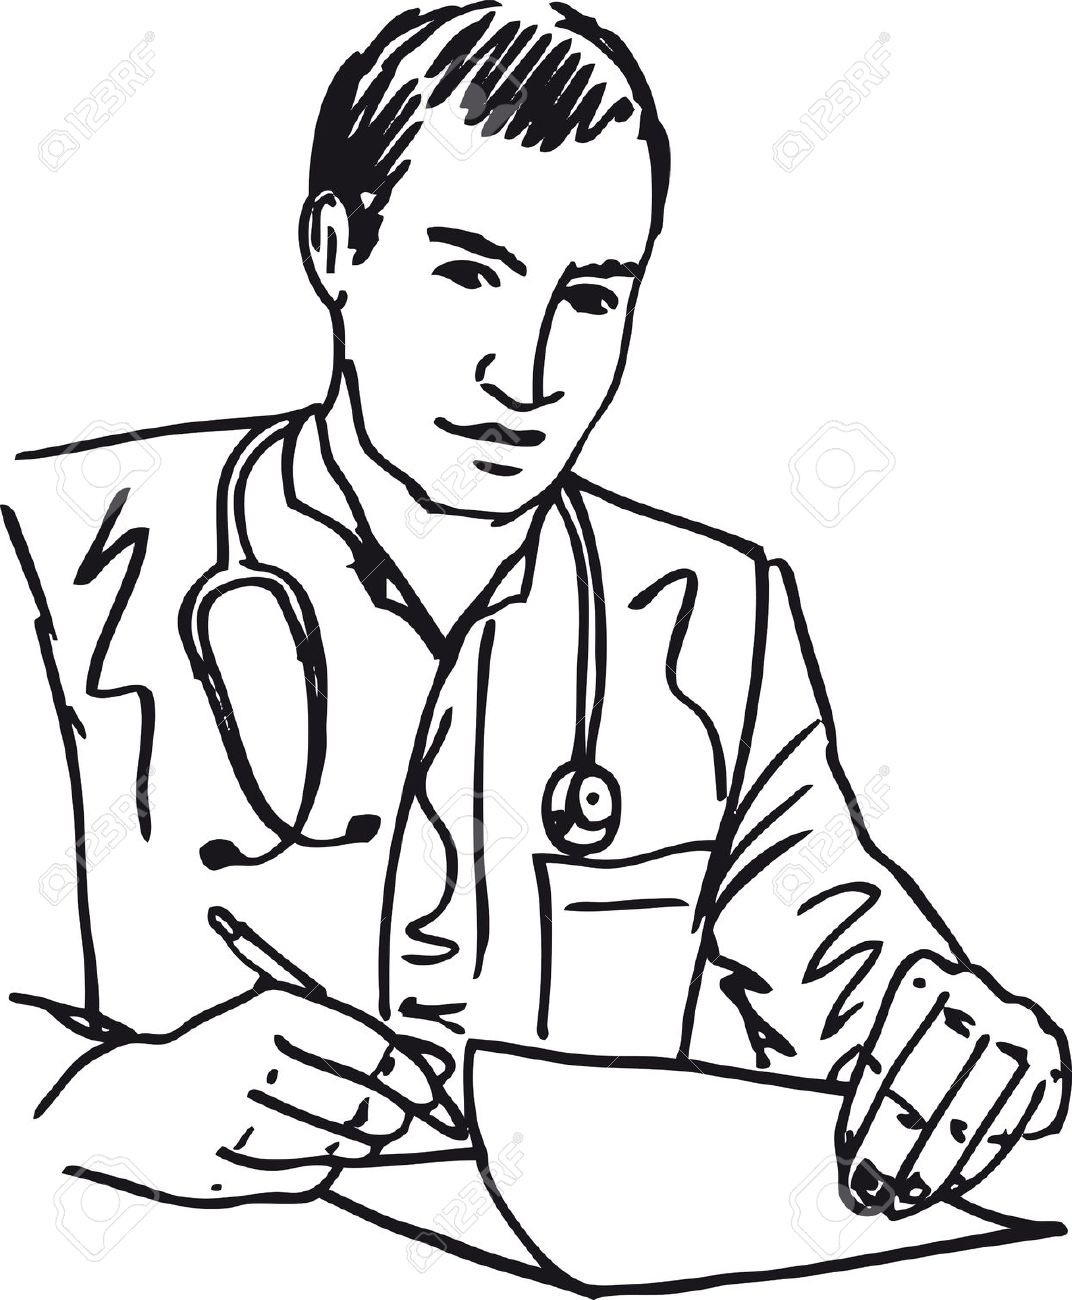 Doctor clipart. Black and white writings